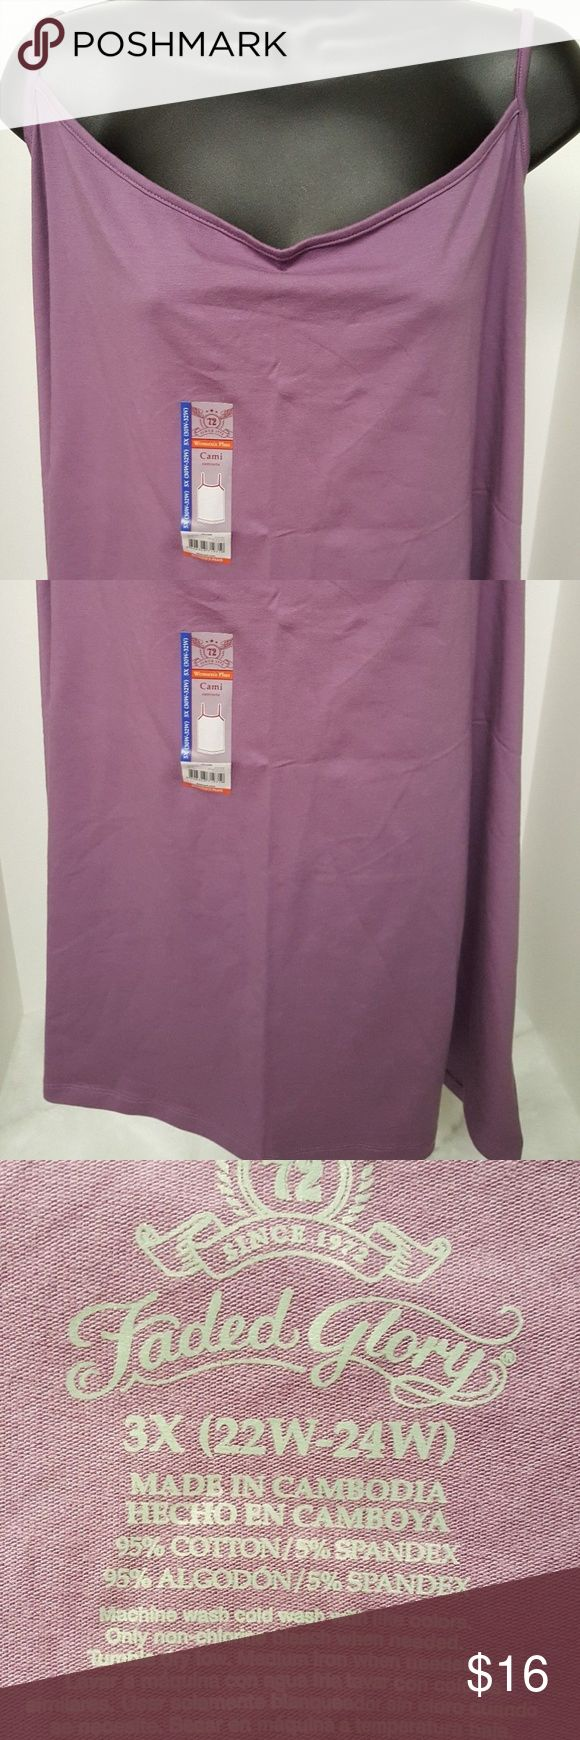 NWT Faded Glory Purple Cami Shirt This item is new with tags.  The measurement from pit to pit is 22 inches. The length from shoulder to bottom is 27.25 inches.  The material is 95% cotton and 5% spandex.  Size 3X (22W/24W). Faded Glory Tops Camisoles